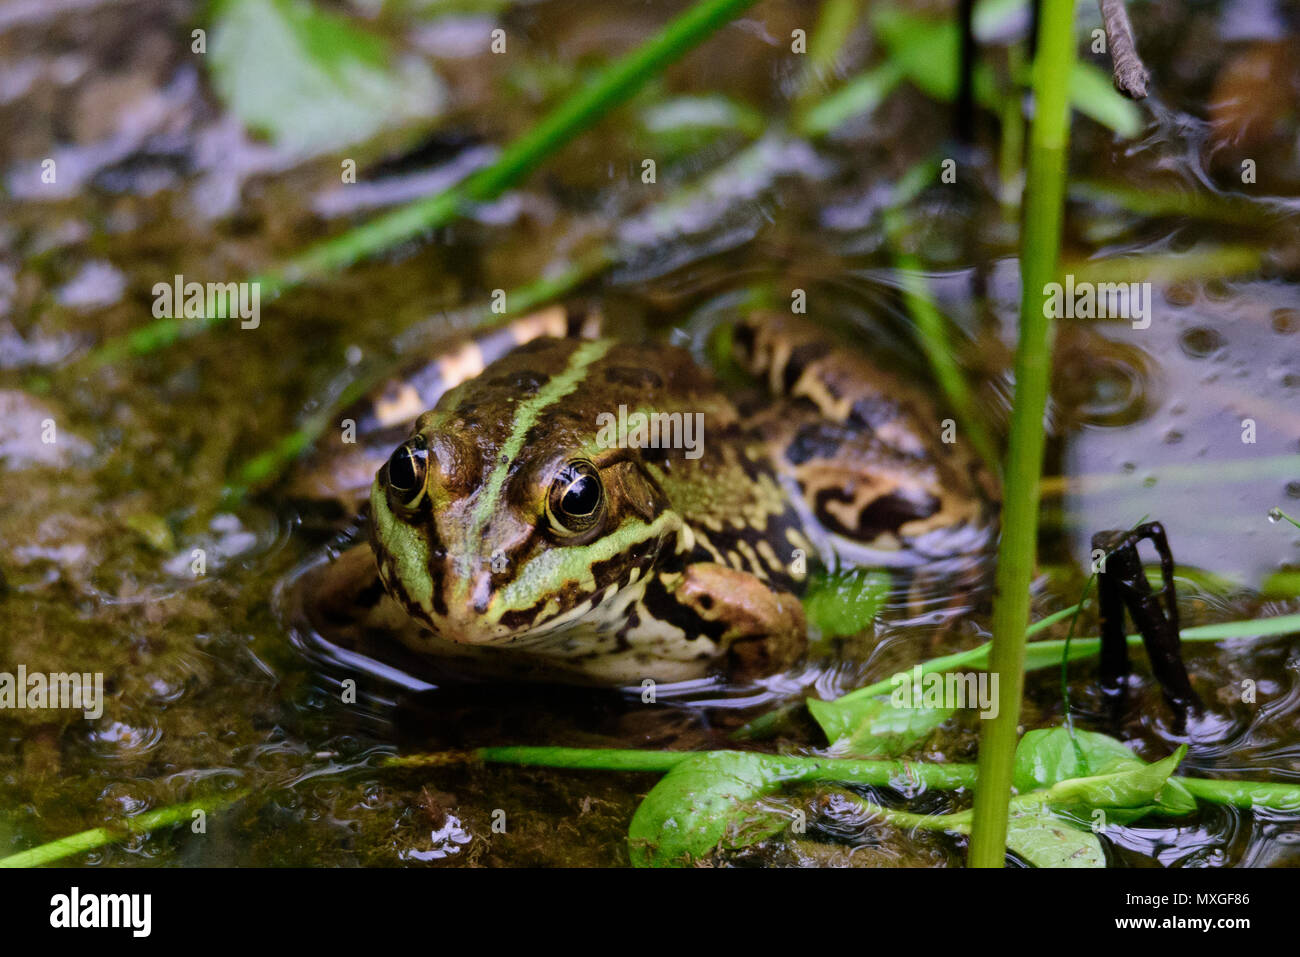 A green frog also known as the common water frog or edible frog in a pond with some foliage - Stock Image